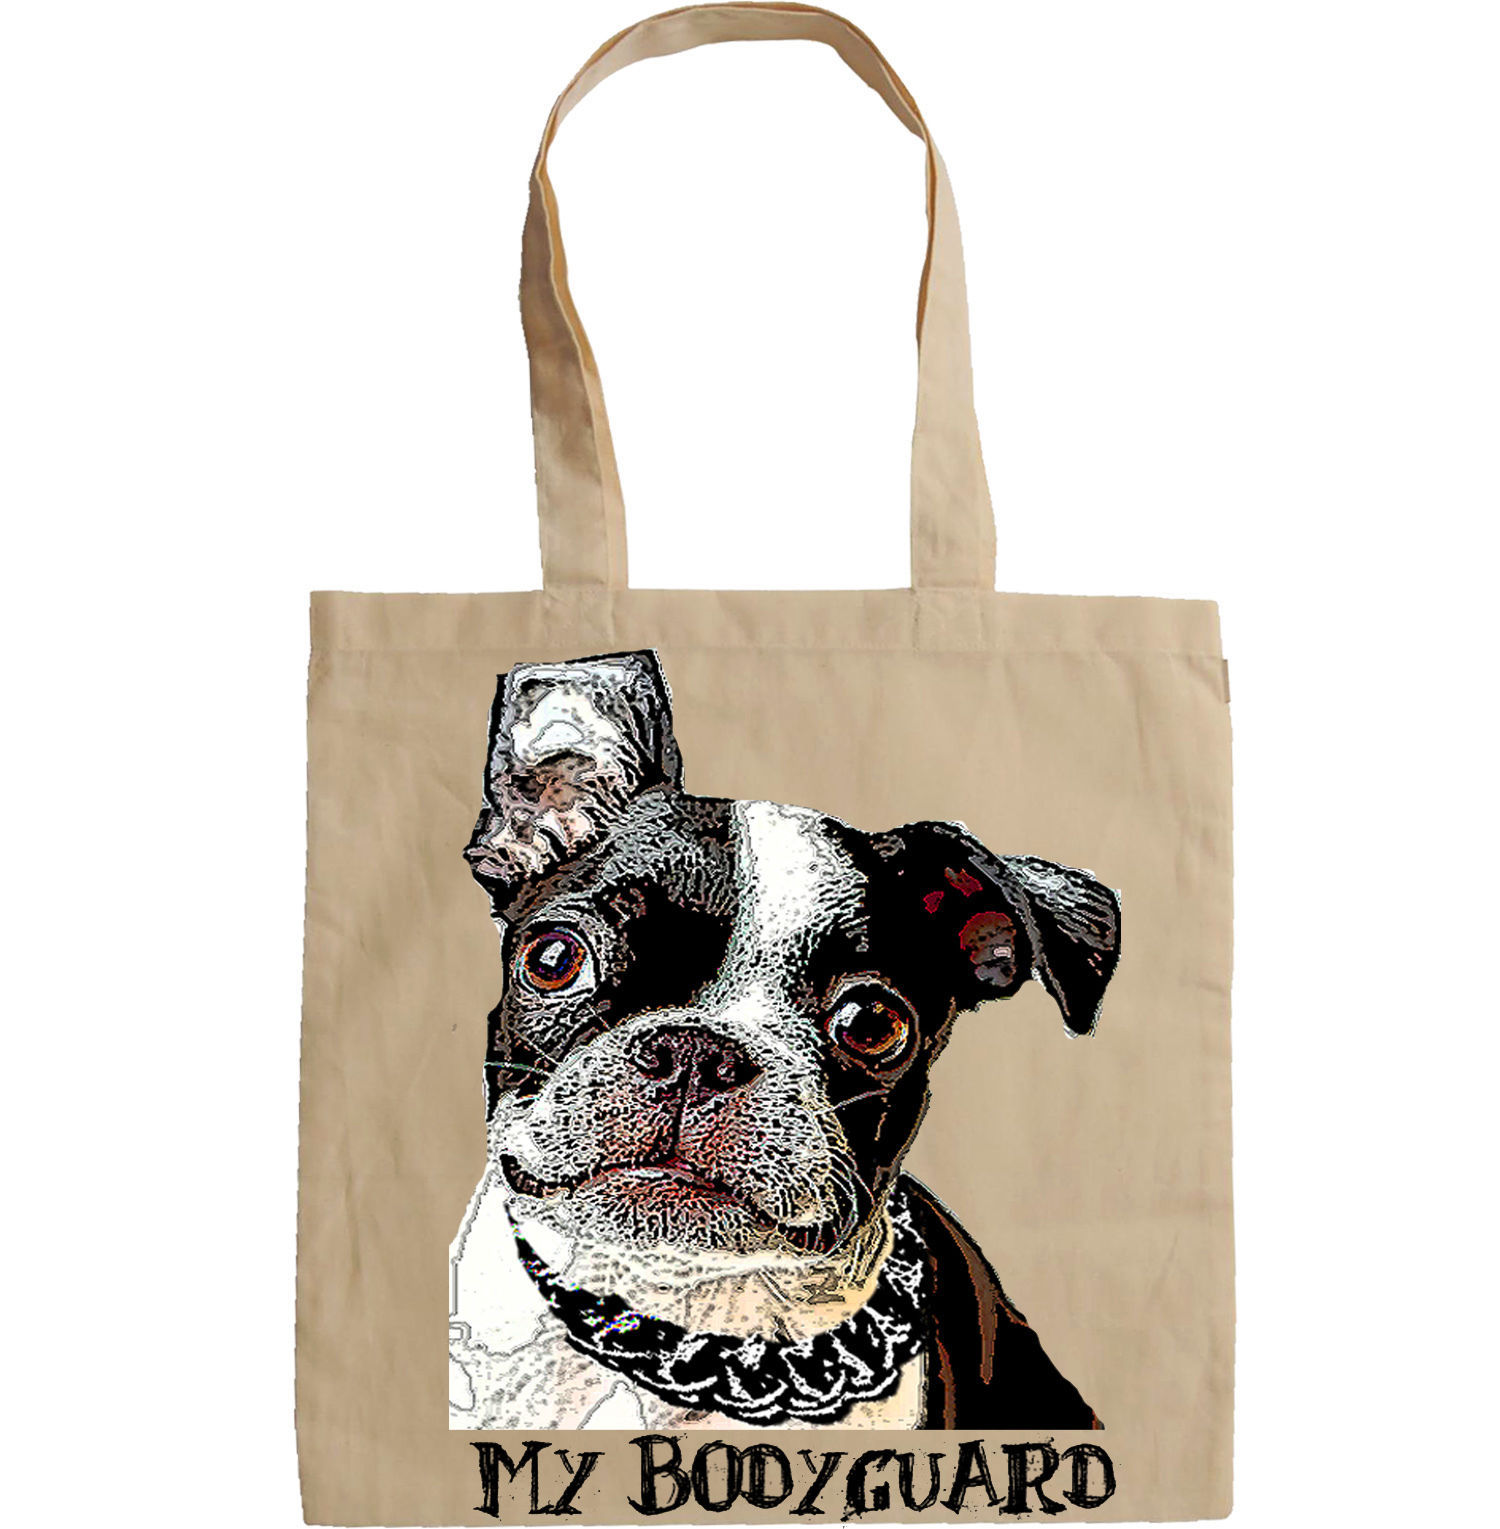 BOSTON TERRIER MY BODYGUARD 1 - NEW AMAZING GRAPHIC HAND BAG/TOTE BAG